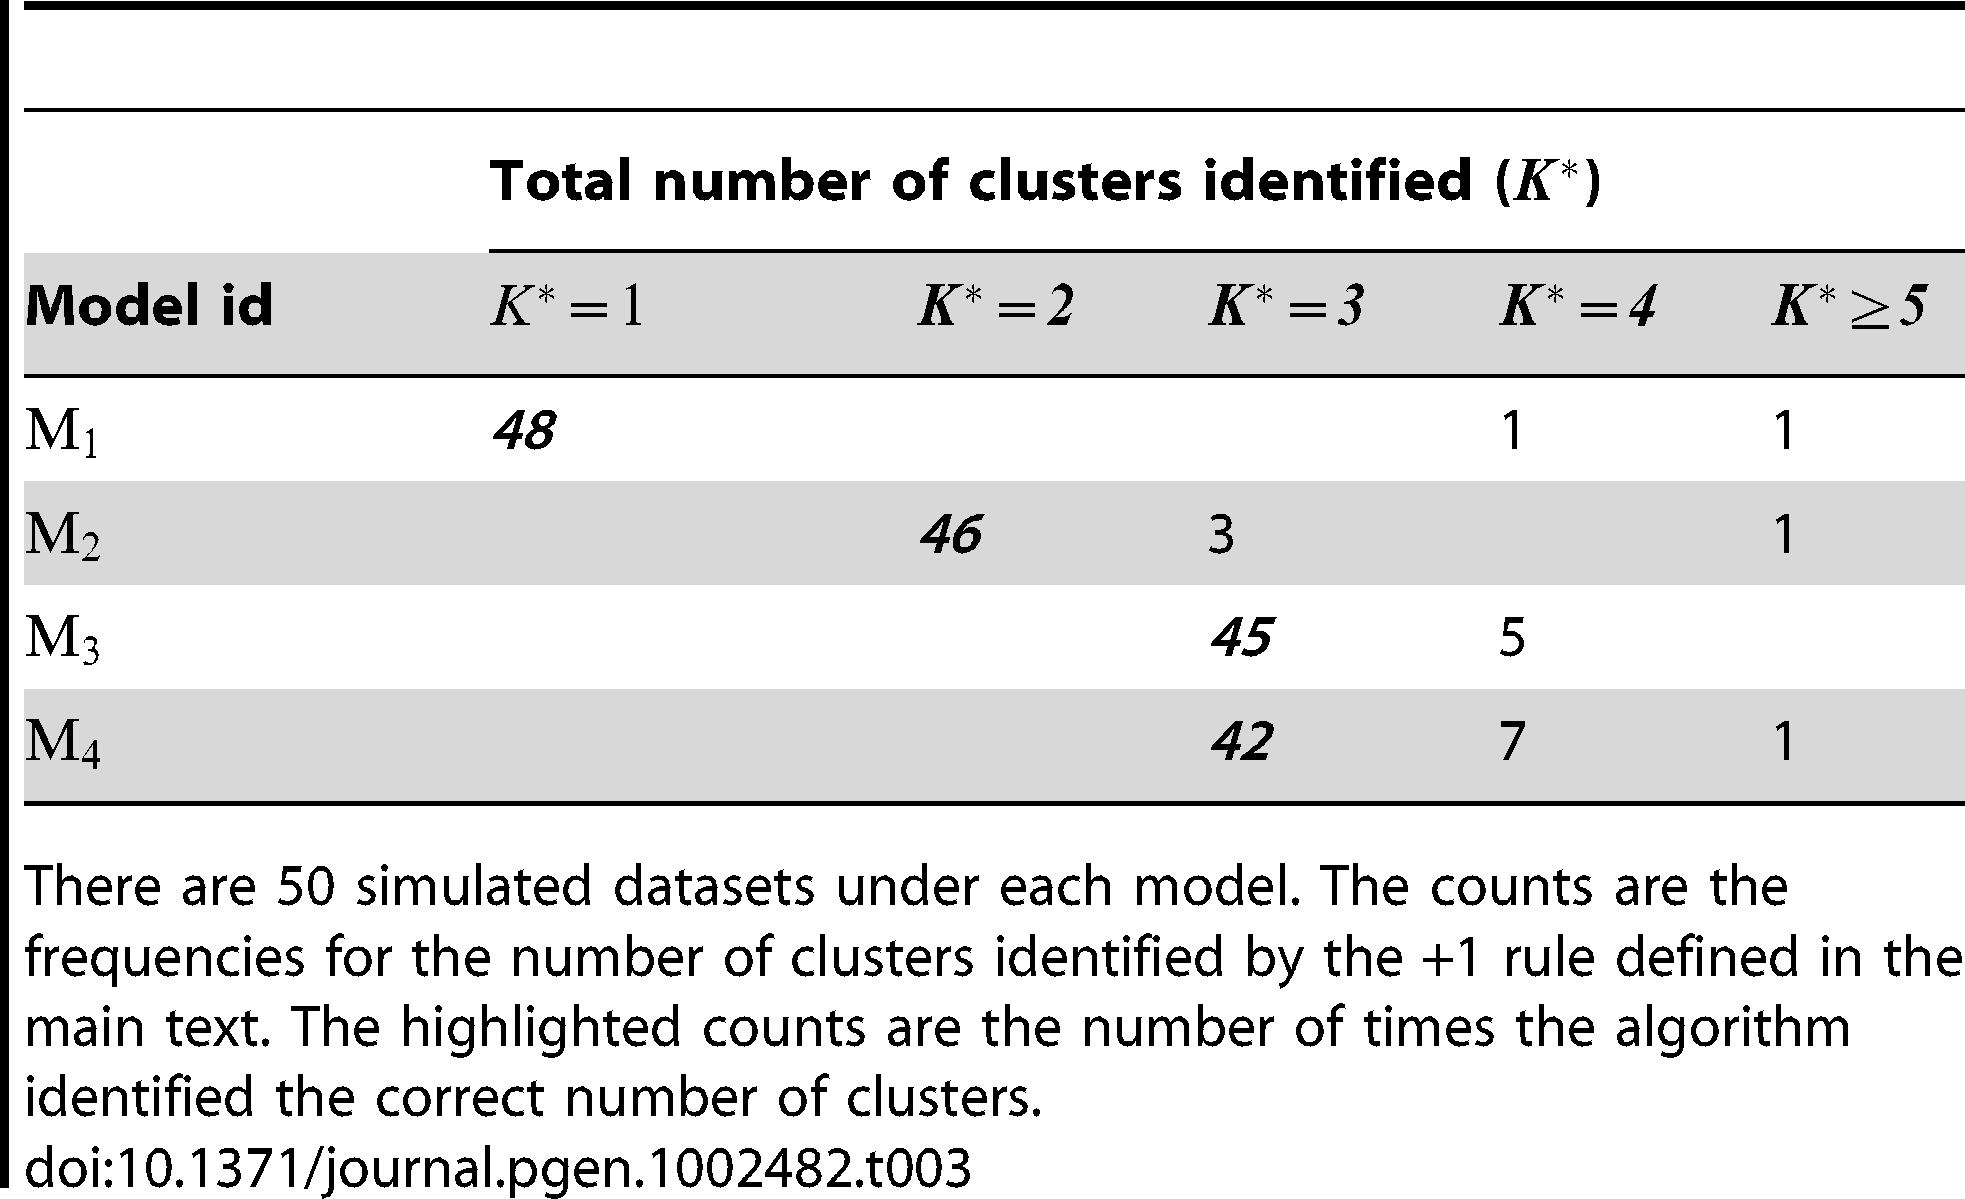 Performance of the +1 rule for identifying the number of clusters in the simulation study.